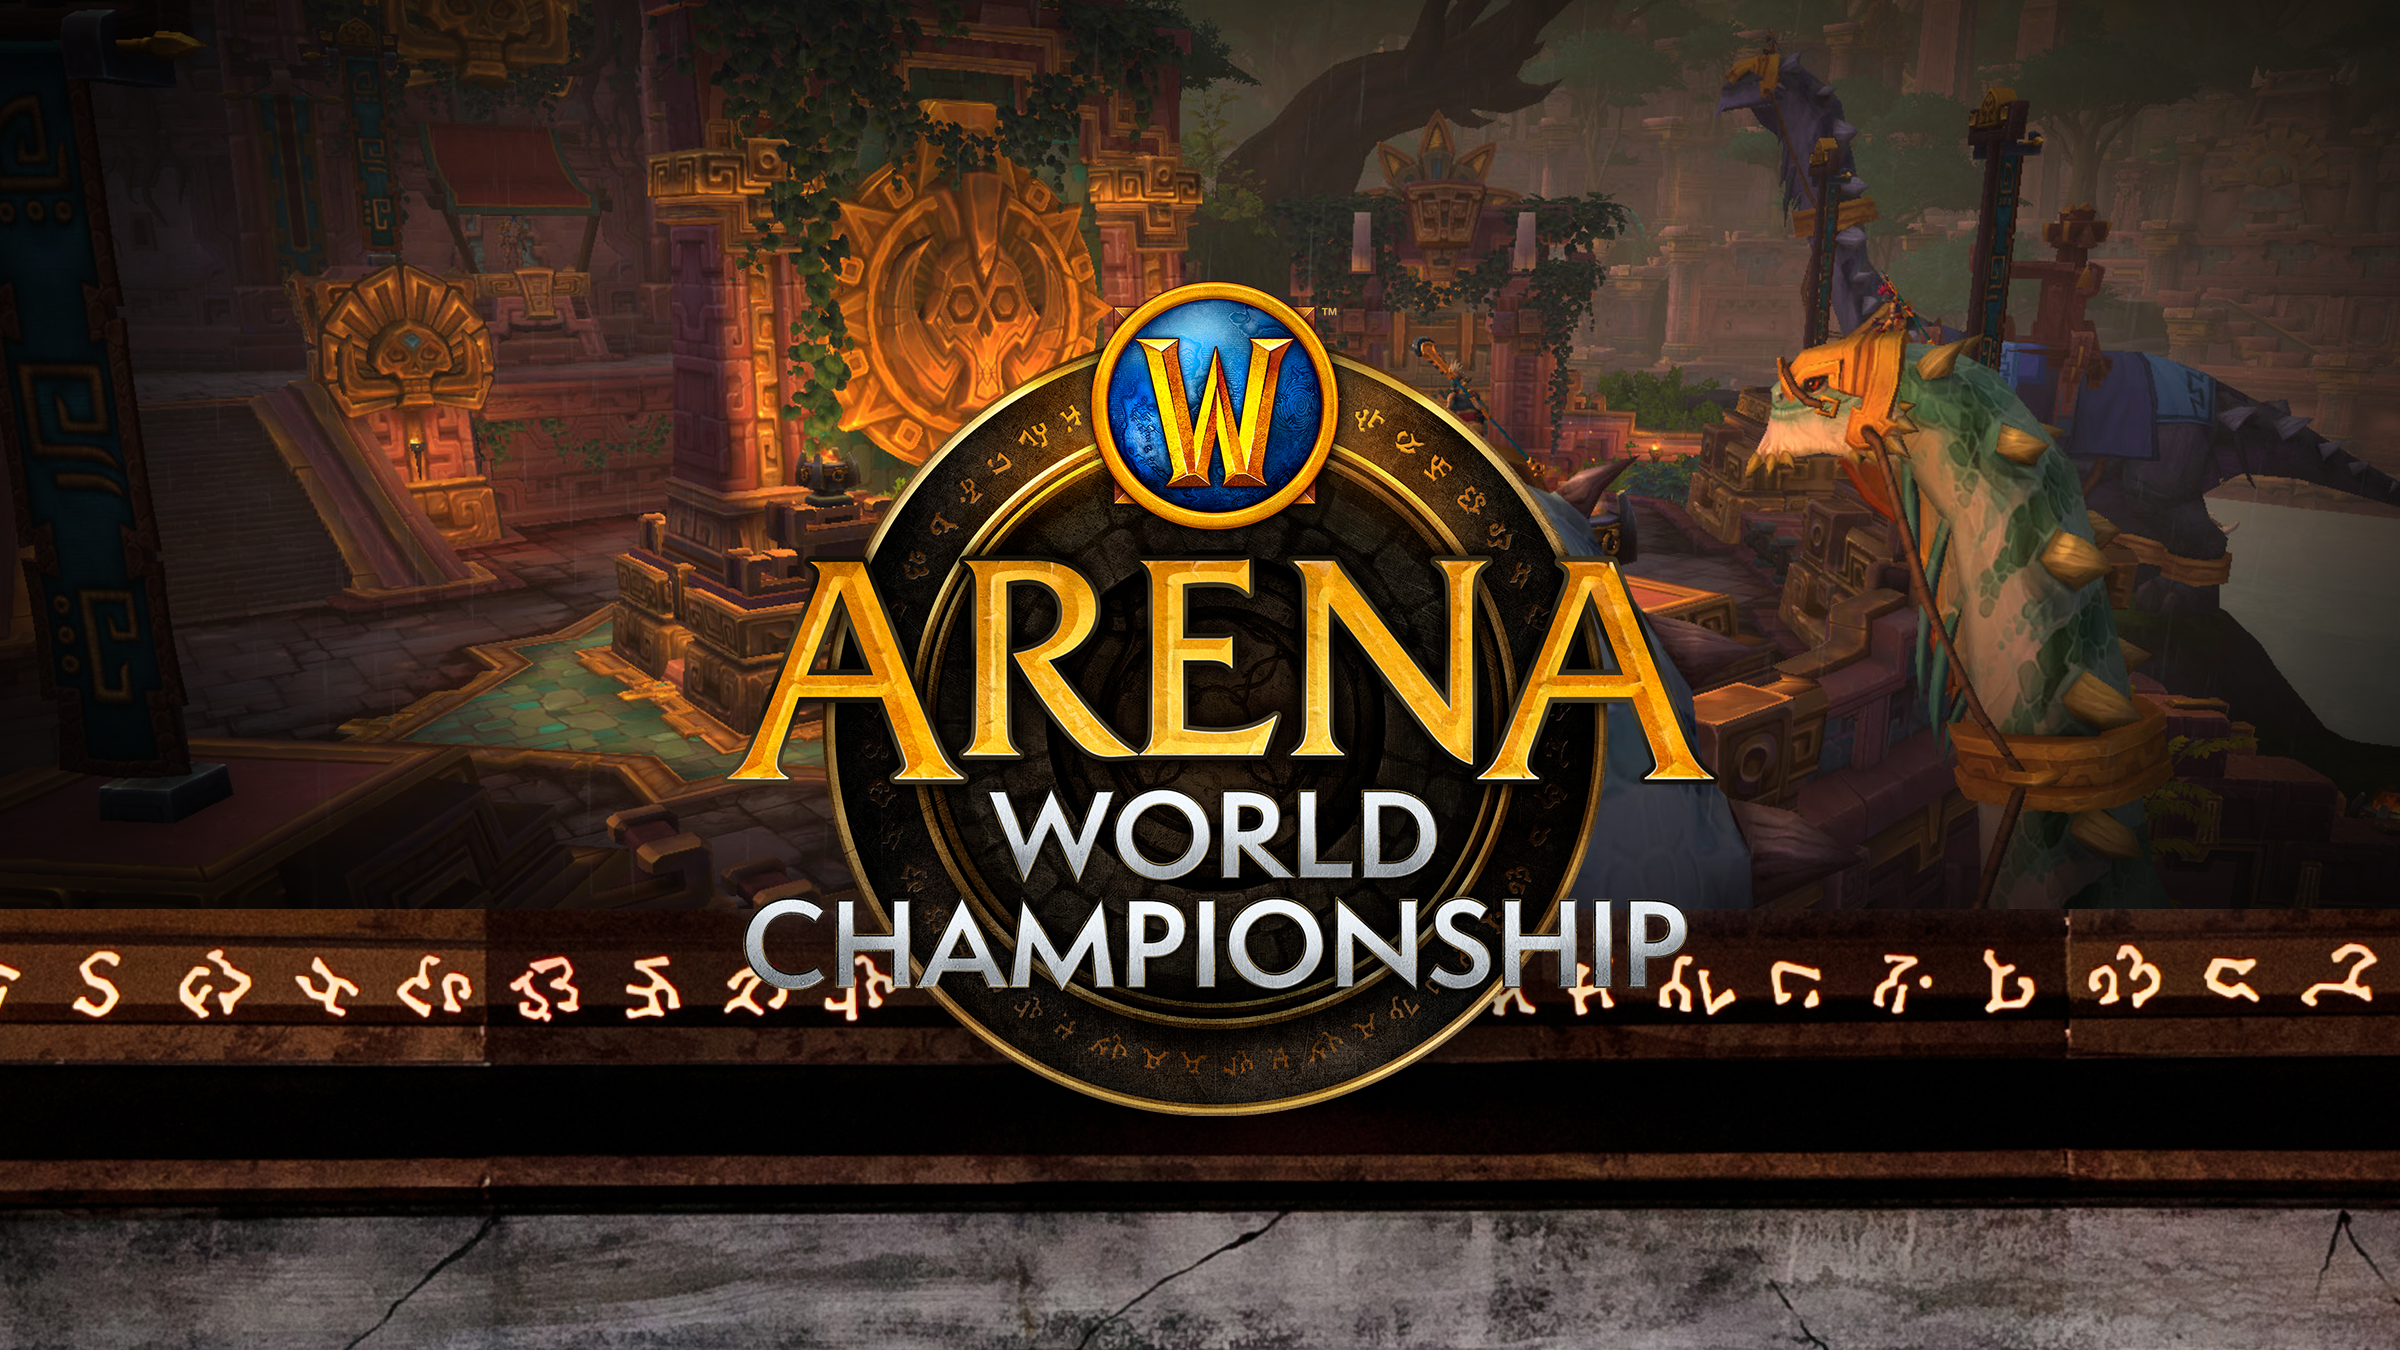 Asia-Pacific Enters the Arena